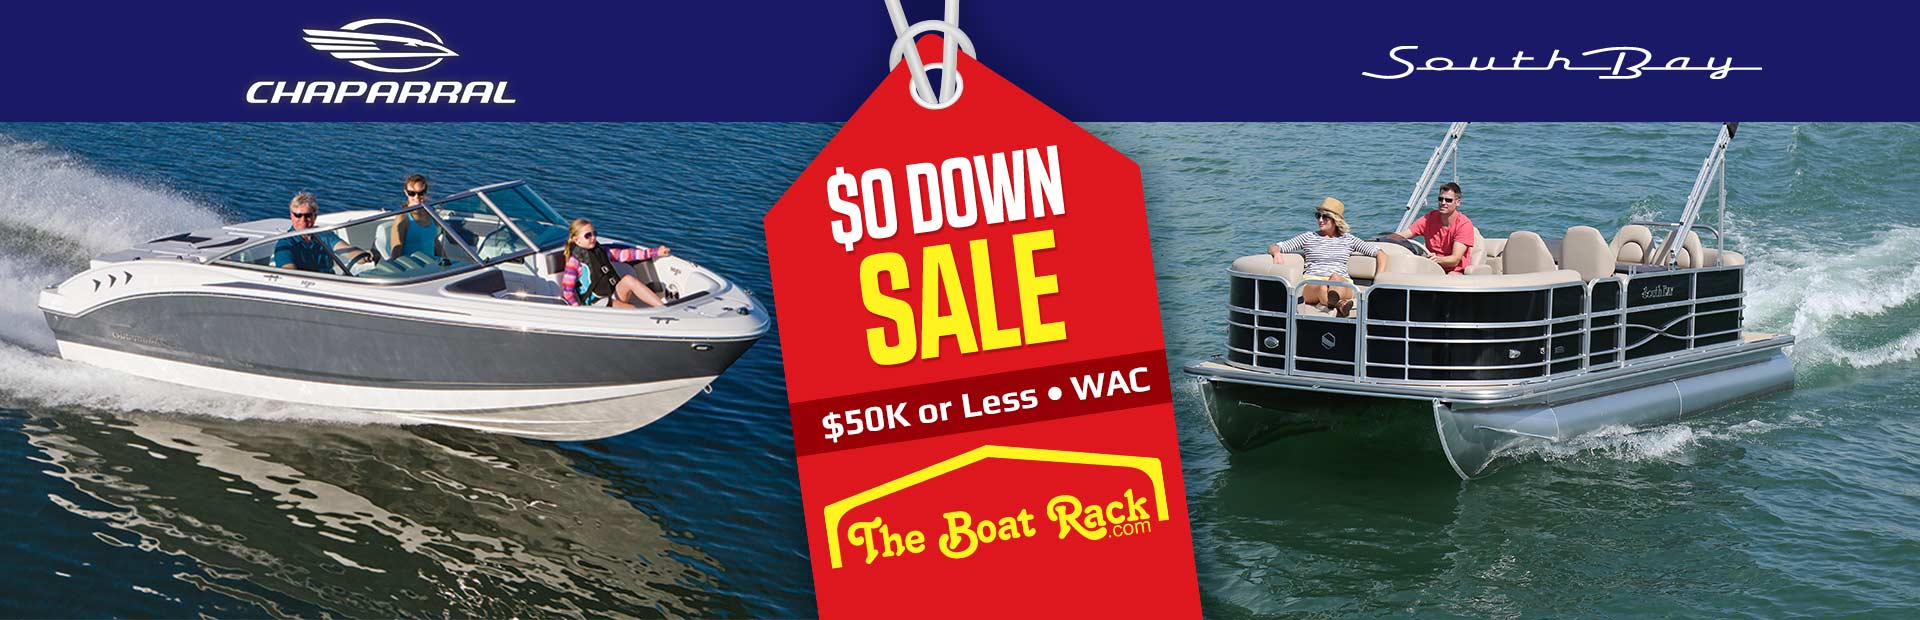 $0 Down Sale: $50K or Less • WAC